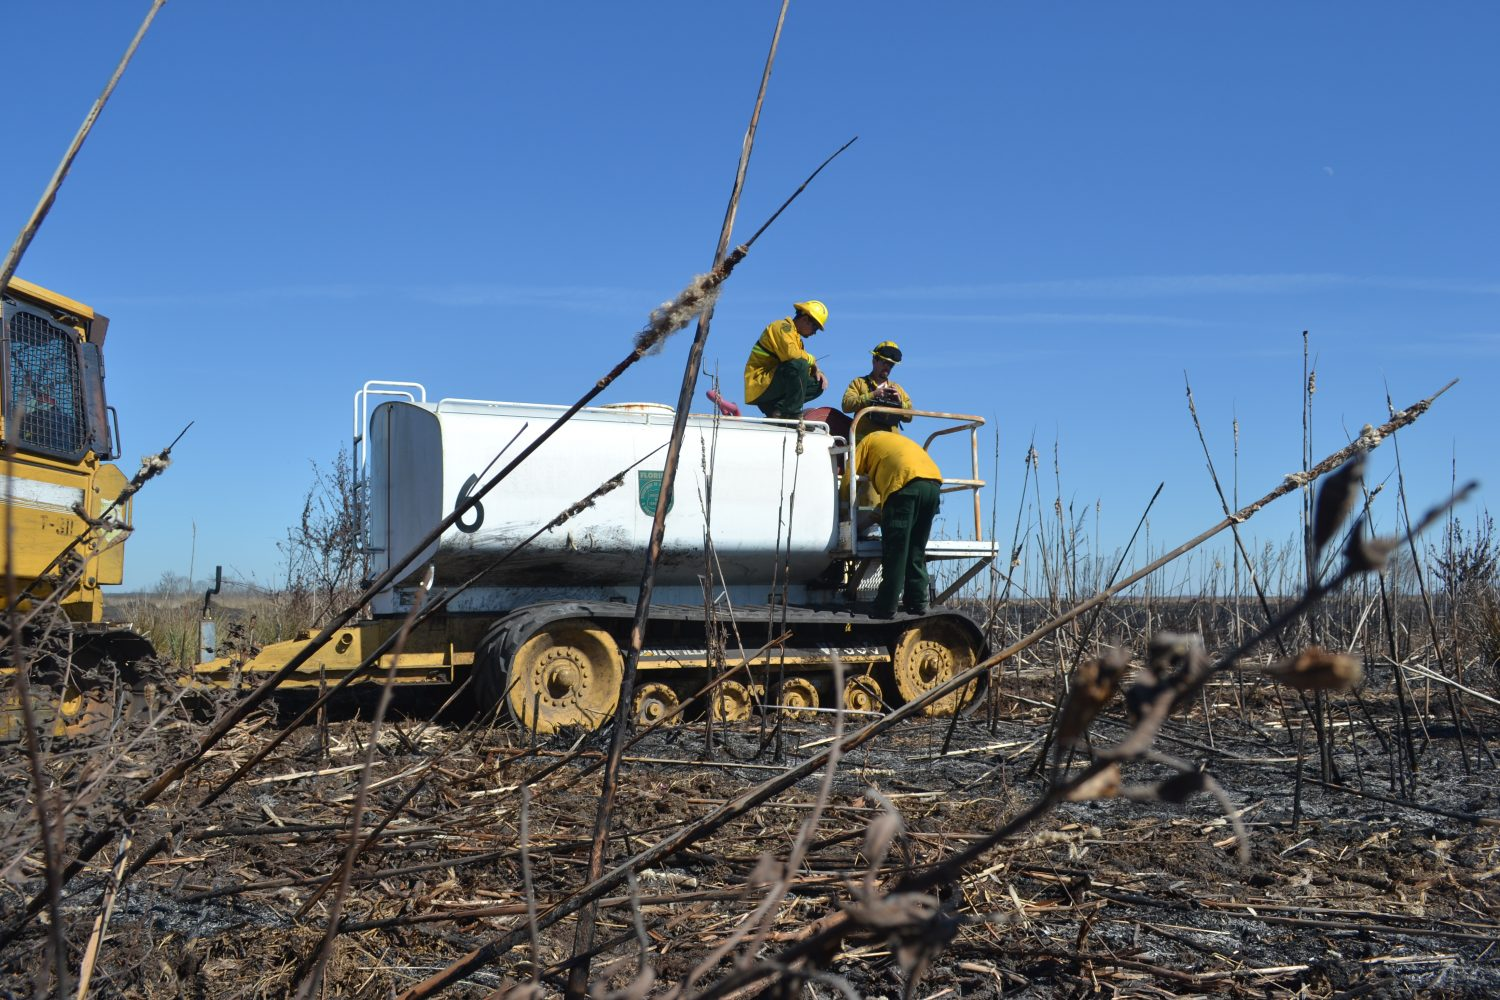 Forestry officials transport water to the fire scene (photo by Chris Gilmore)